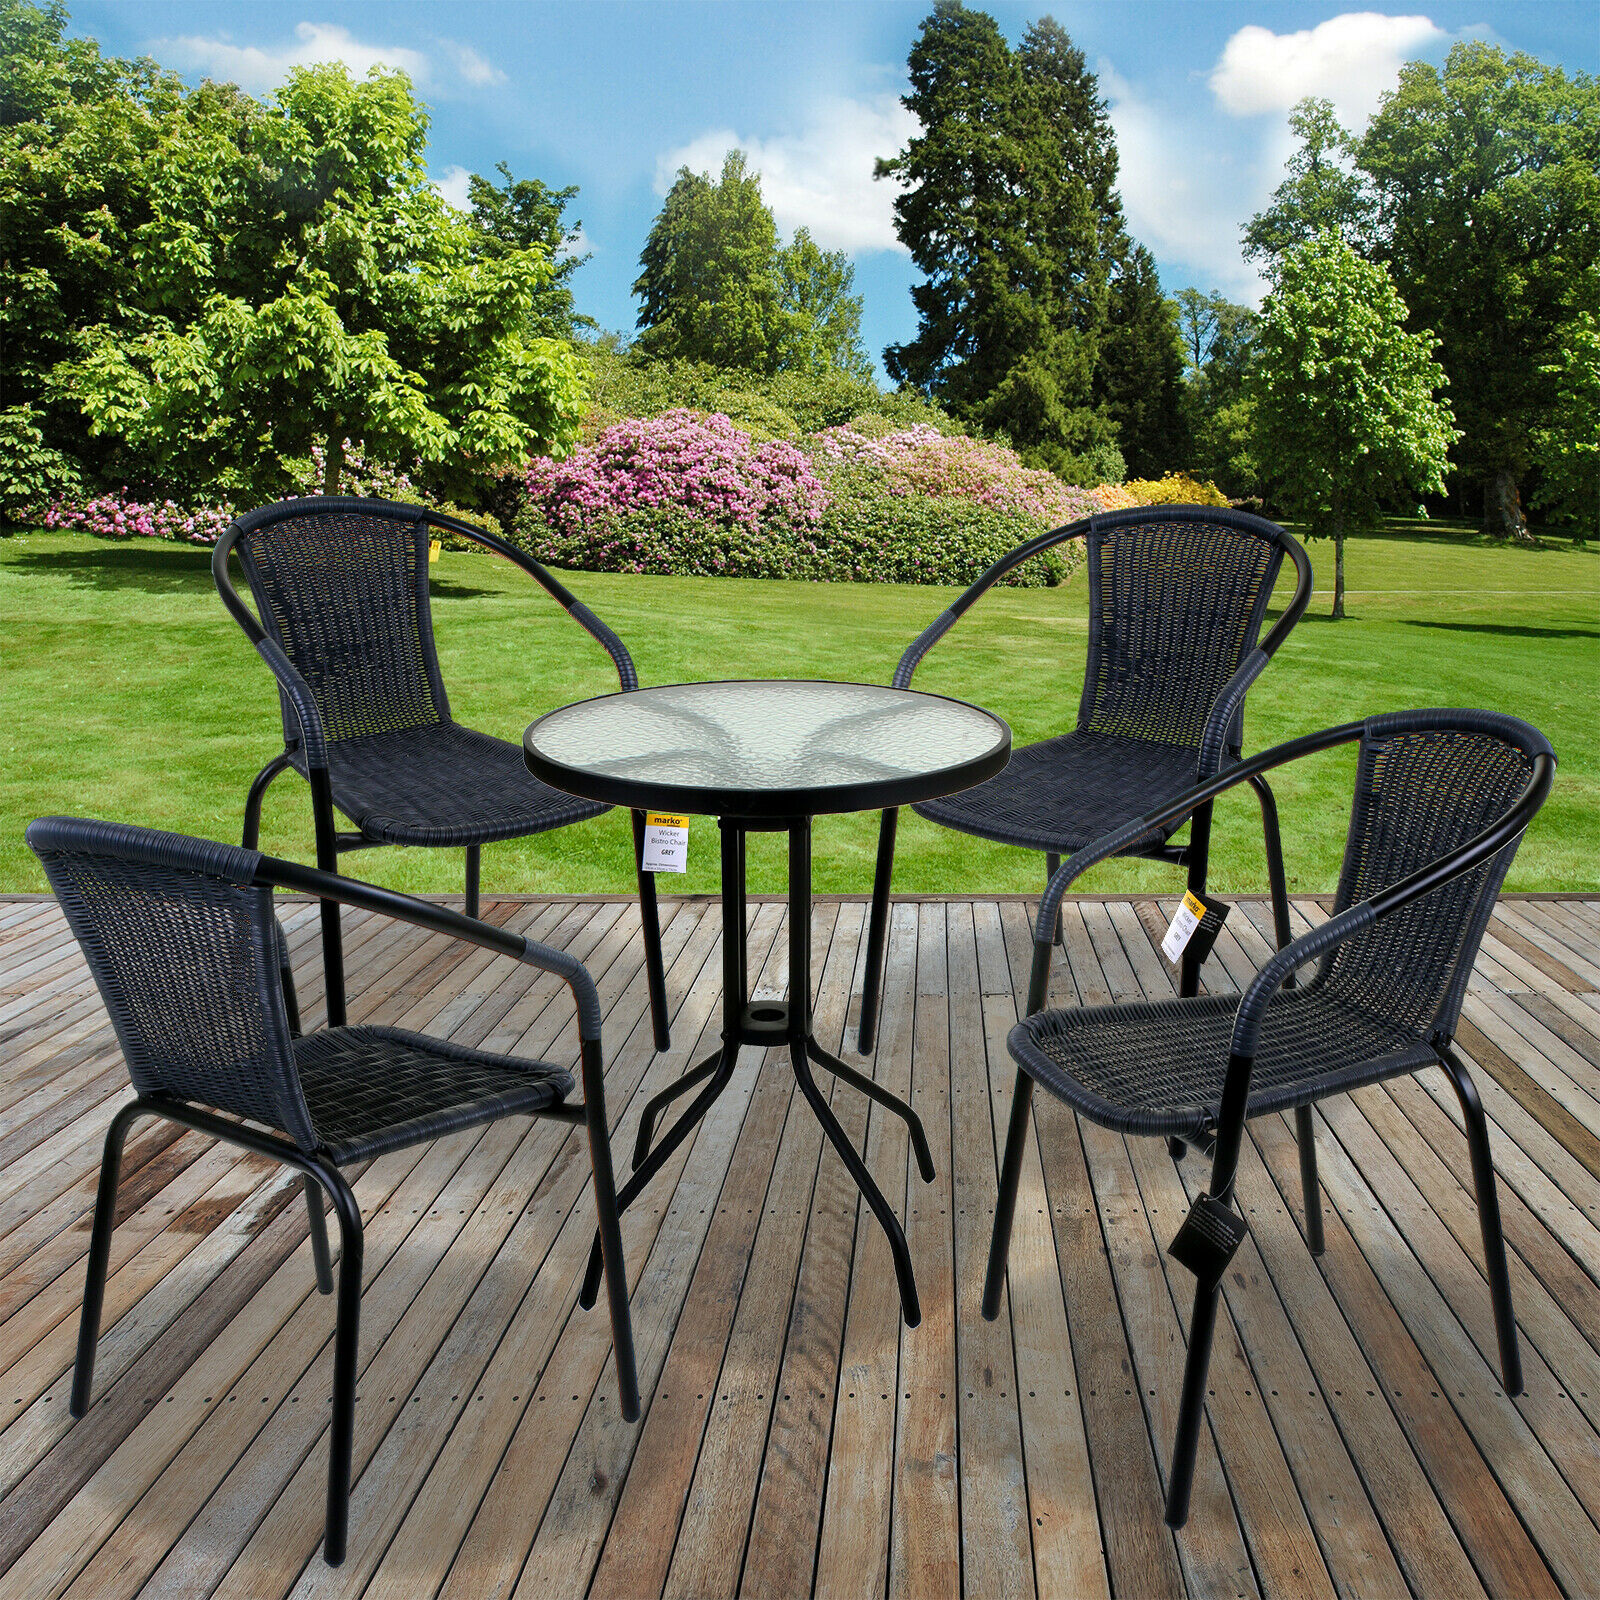 10PC 10PC GREY WICKER PP RATTAN BISTRO CHAIR AND TABLE SET OUTDOOR GARDEN  PATIO